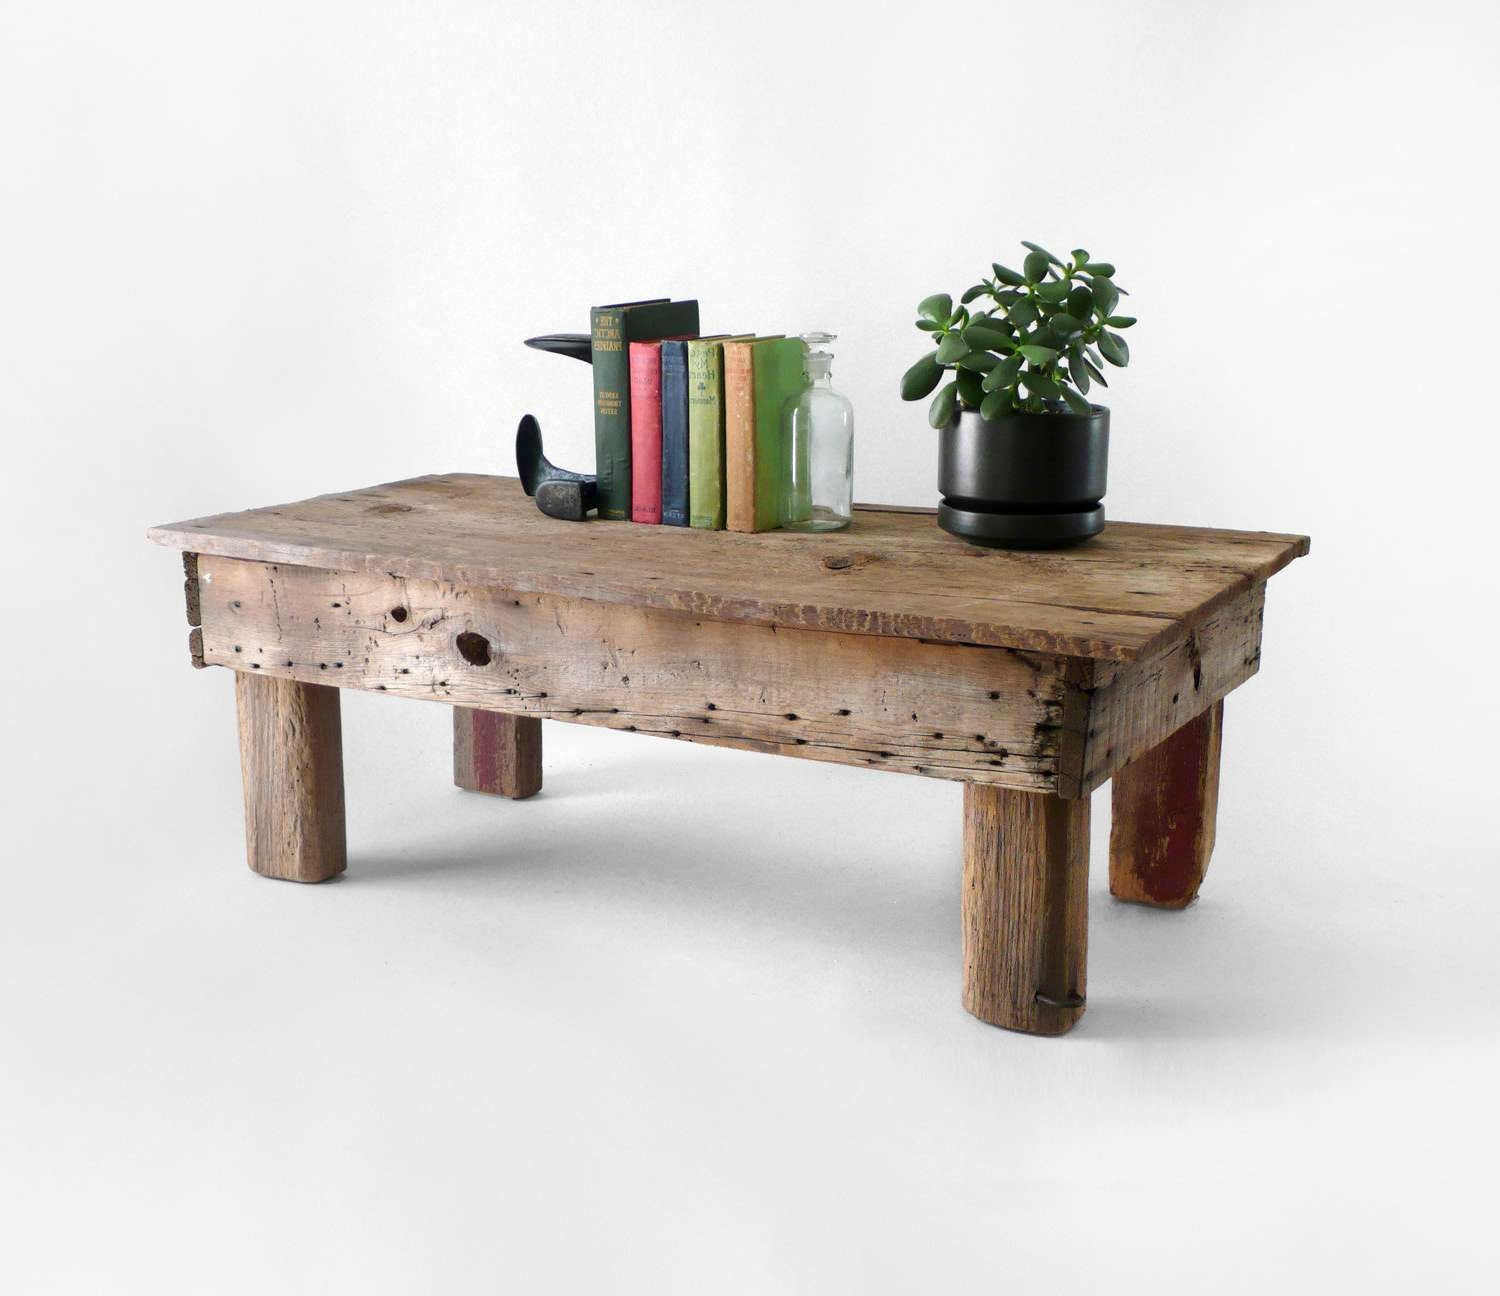 Popular Rustic Wooden Coffee Tables Regarding 13 Most Inspirational Rustic Wood Coffee Table Ideas For You To (View 12 of 20)